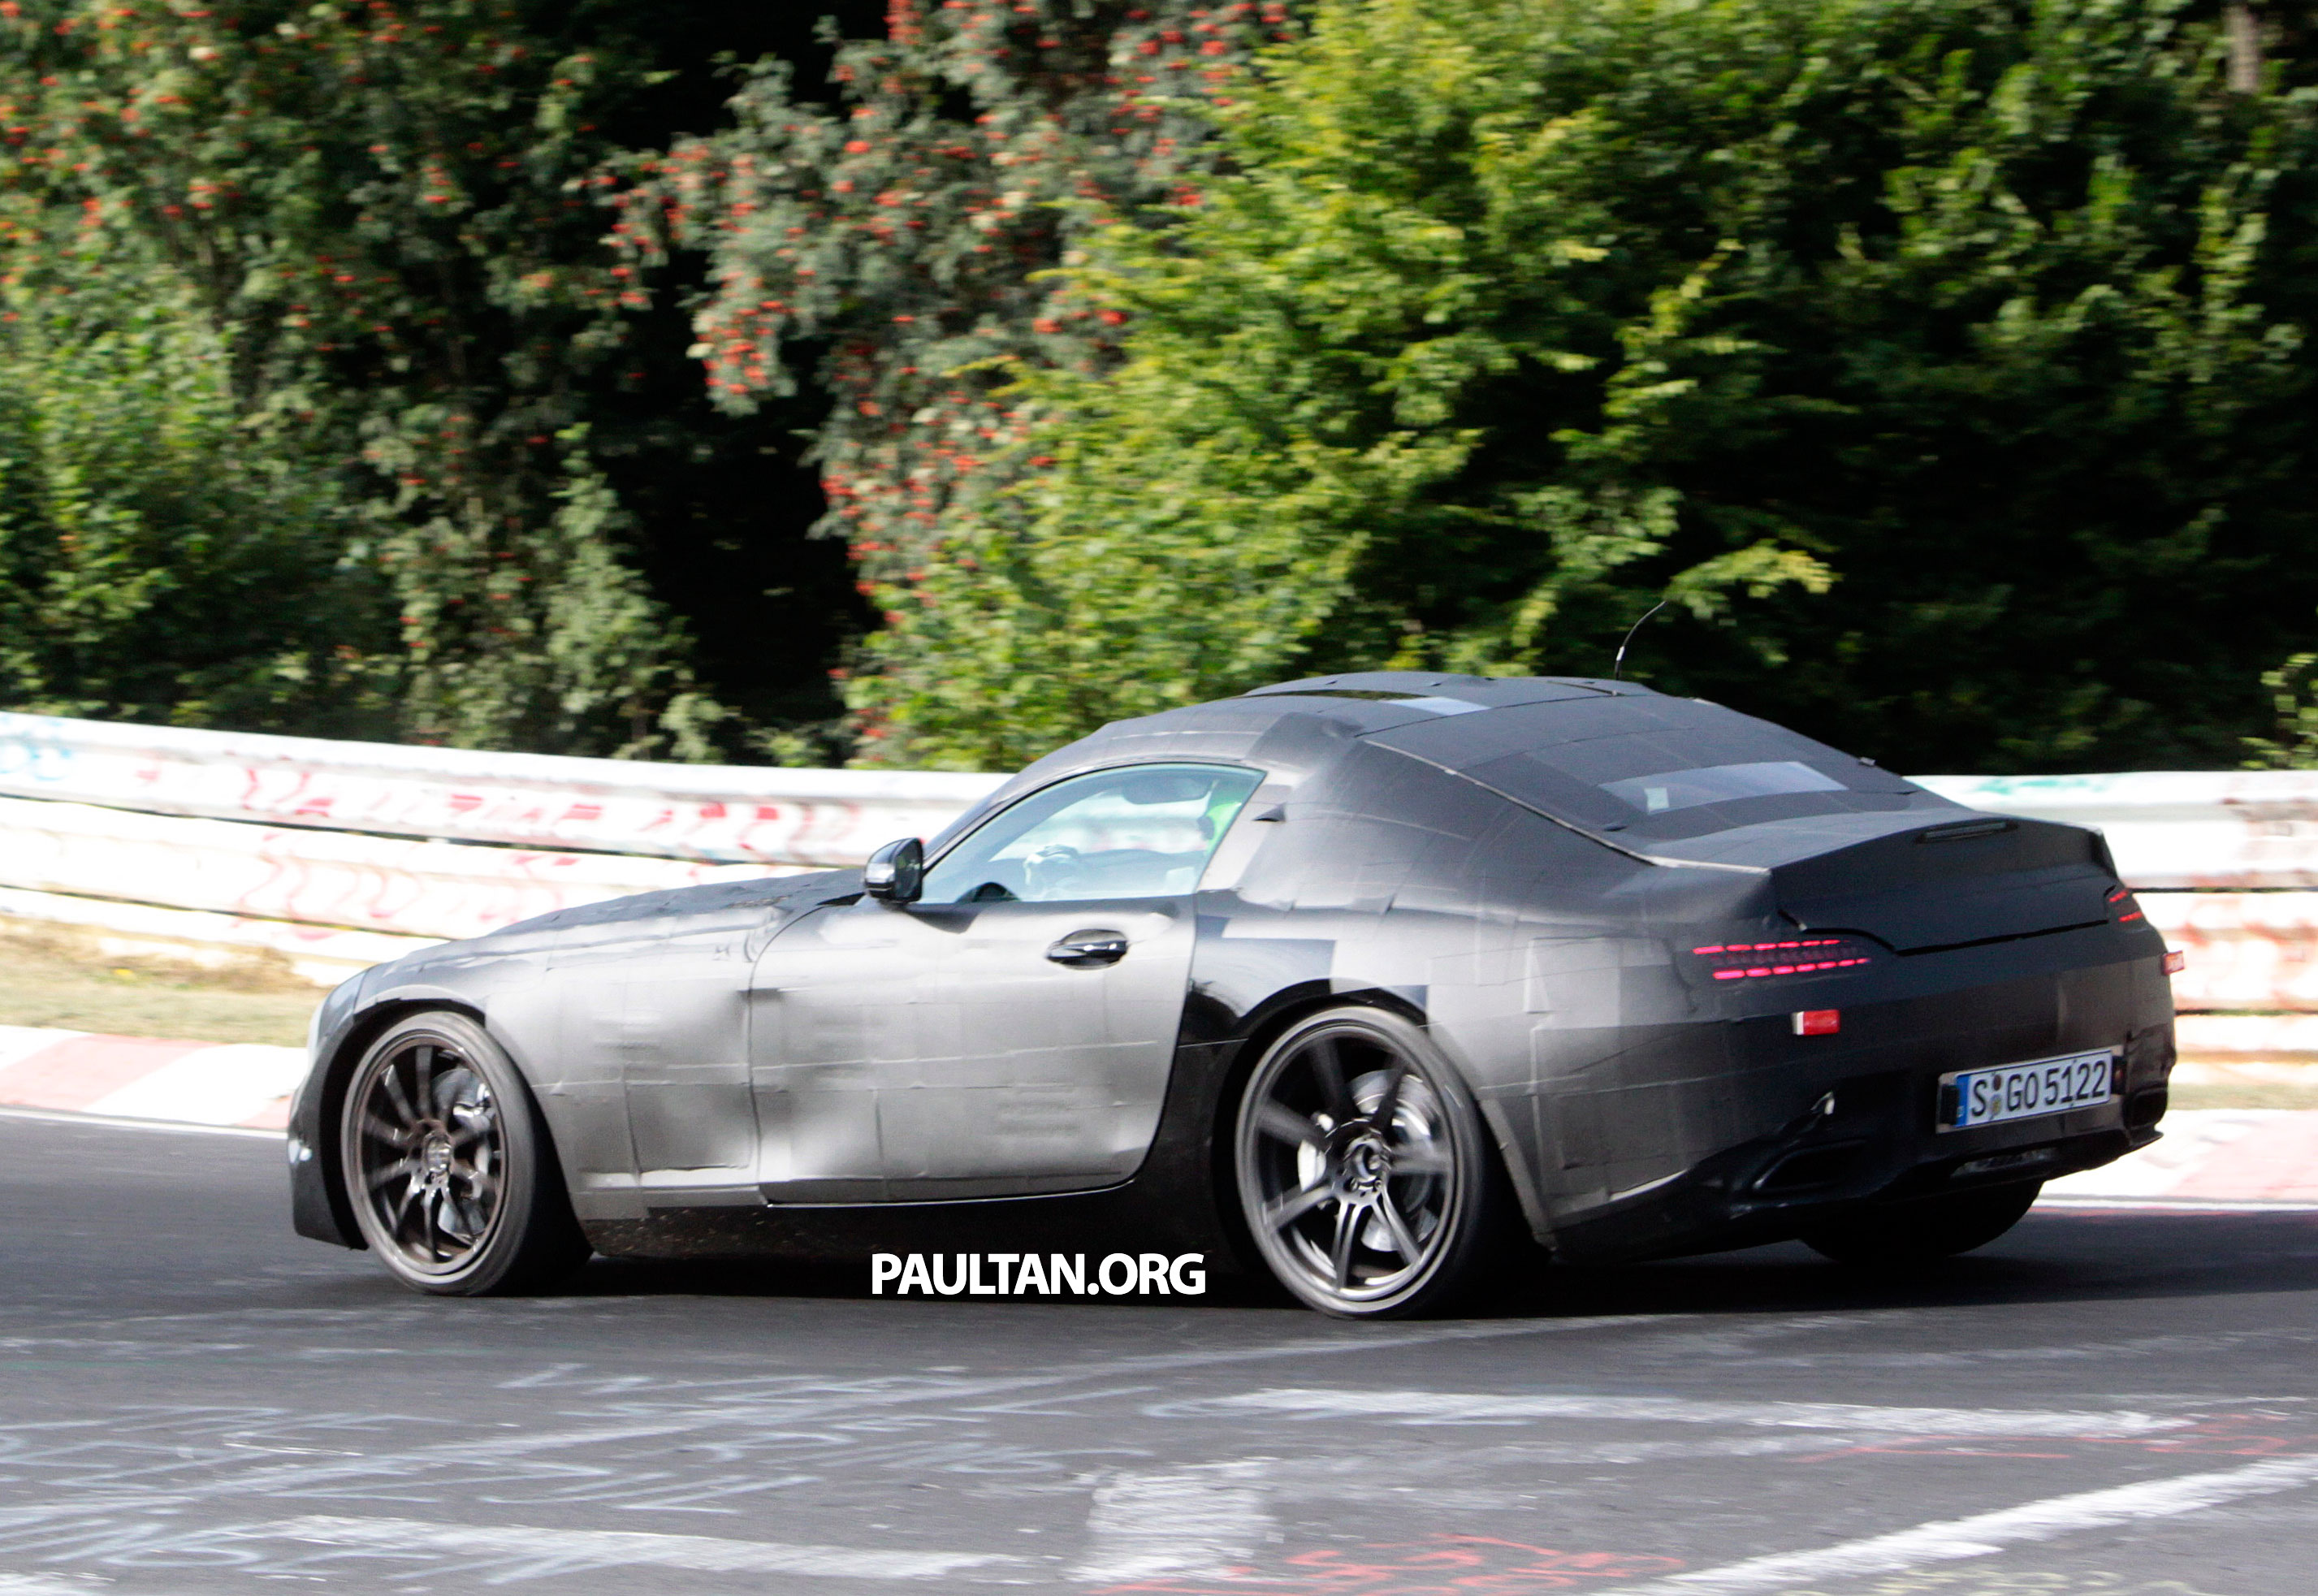 New Mercedes-Benz AMG GT drops some camo! Image 221300